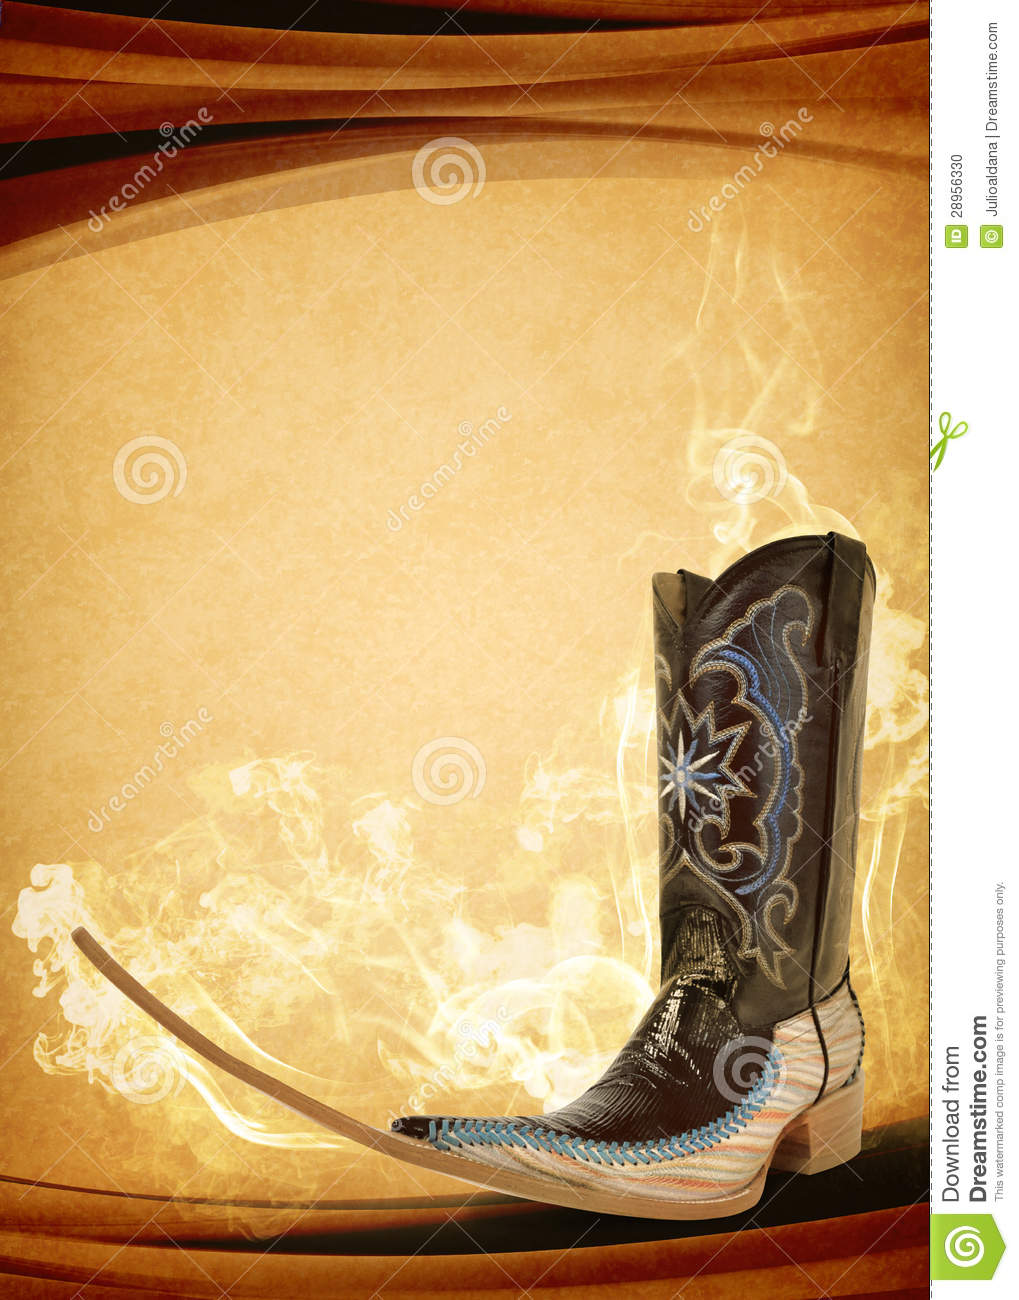 Vintage Mexican pointy boot poster - mexican tribal music clubbing